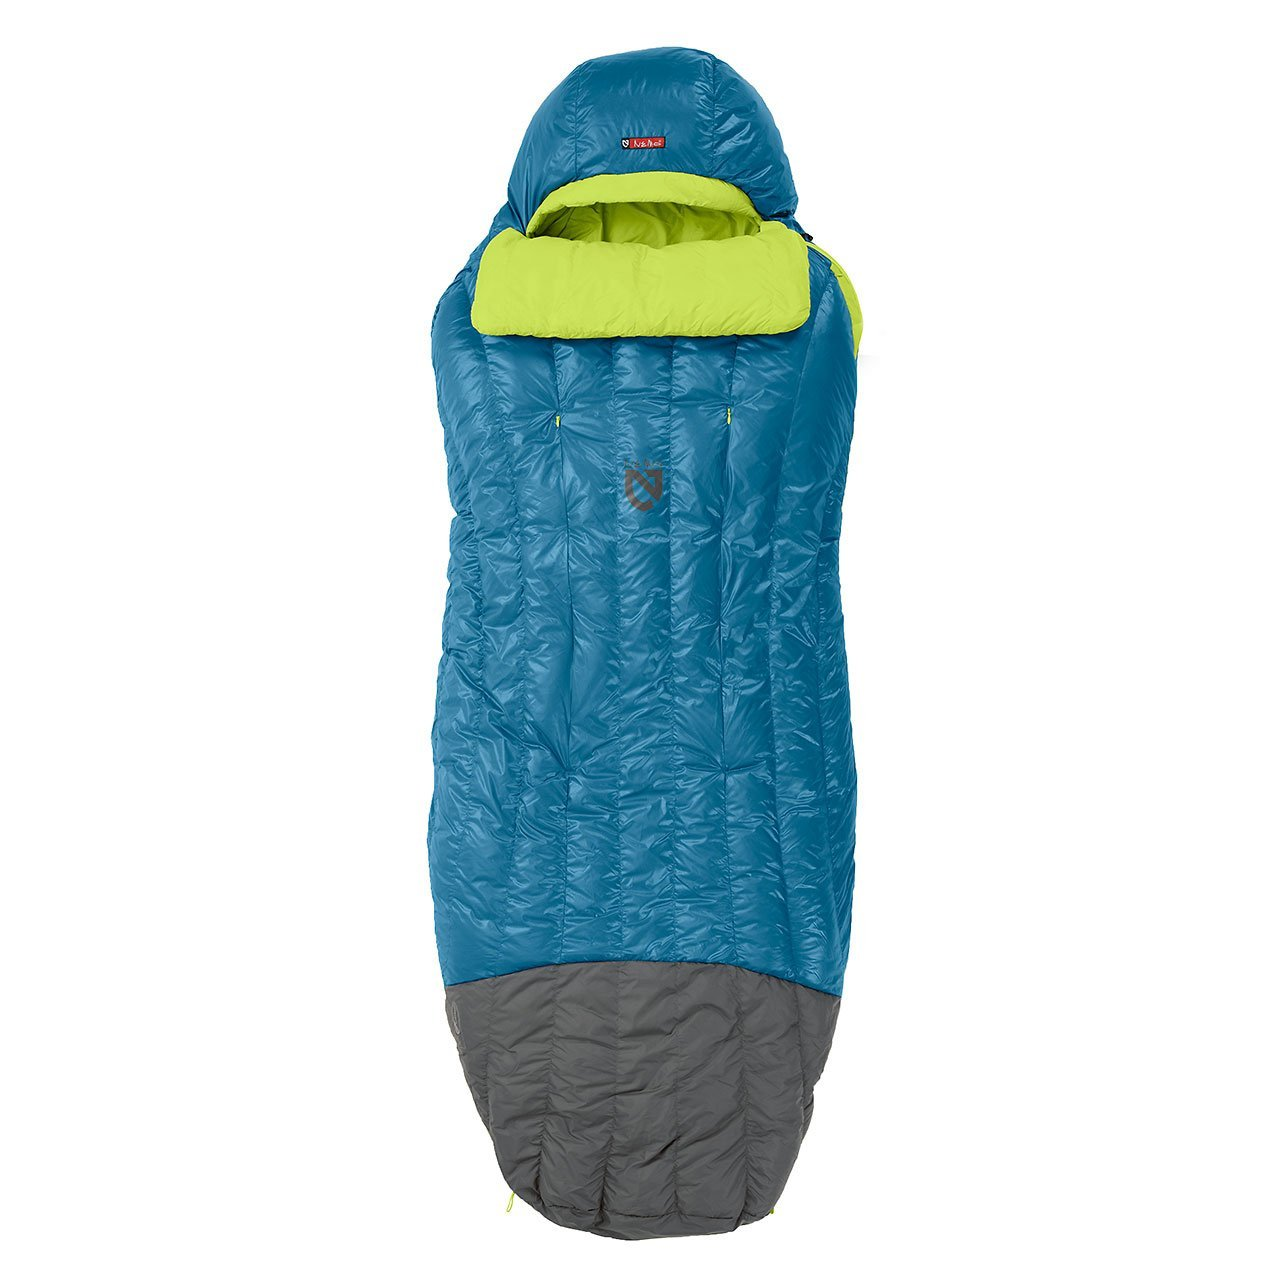 NemoSpecialtyBag How to Pick the Right Sleeping Bag